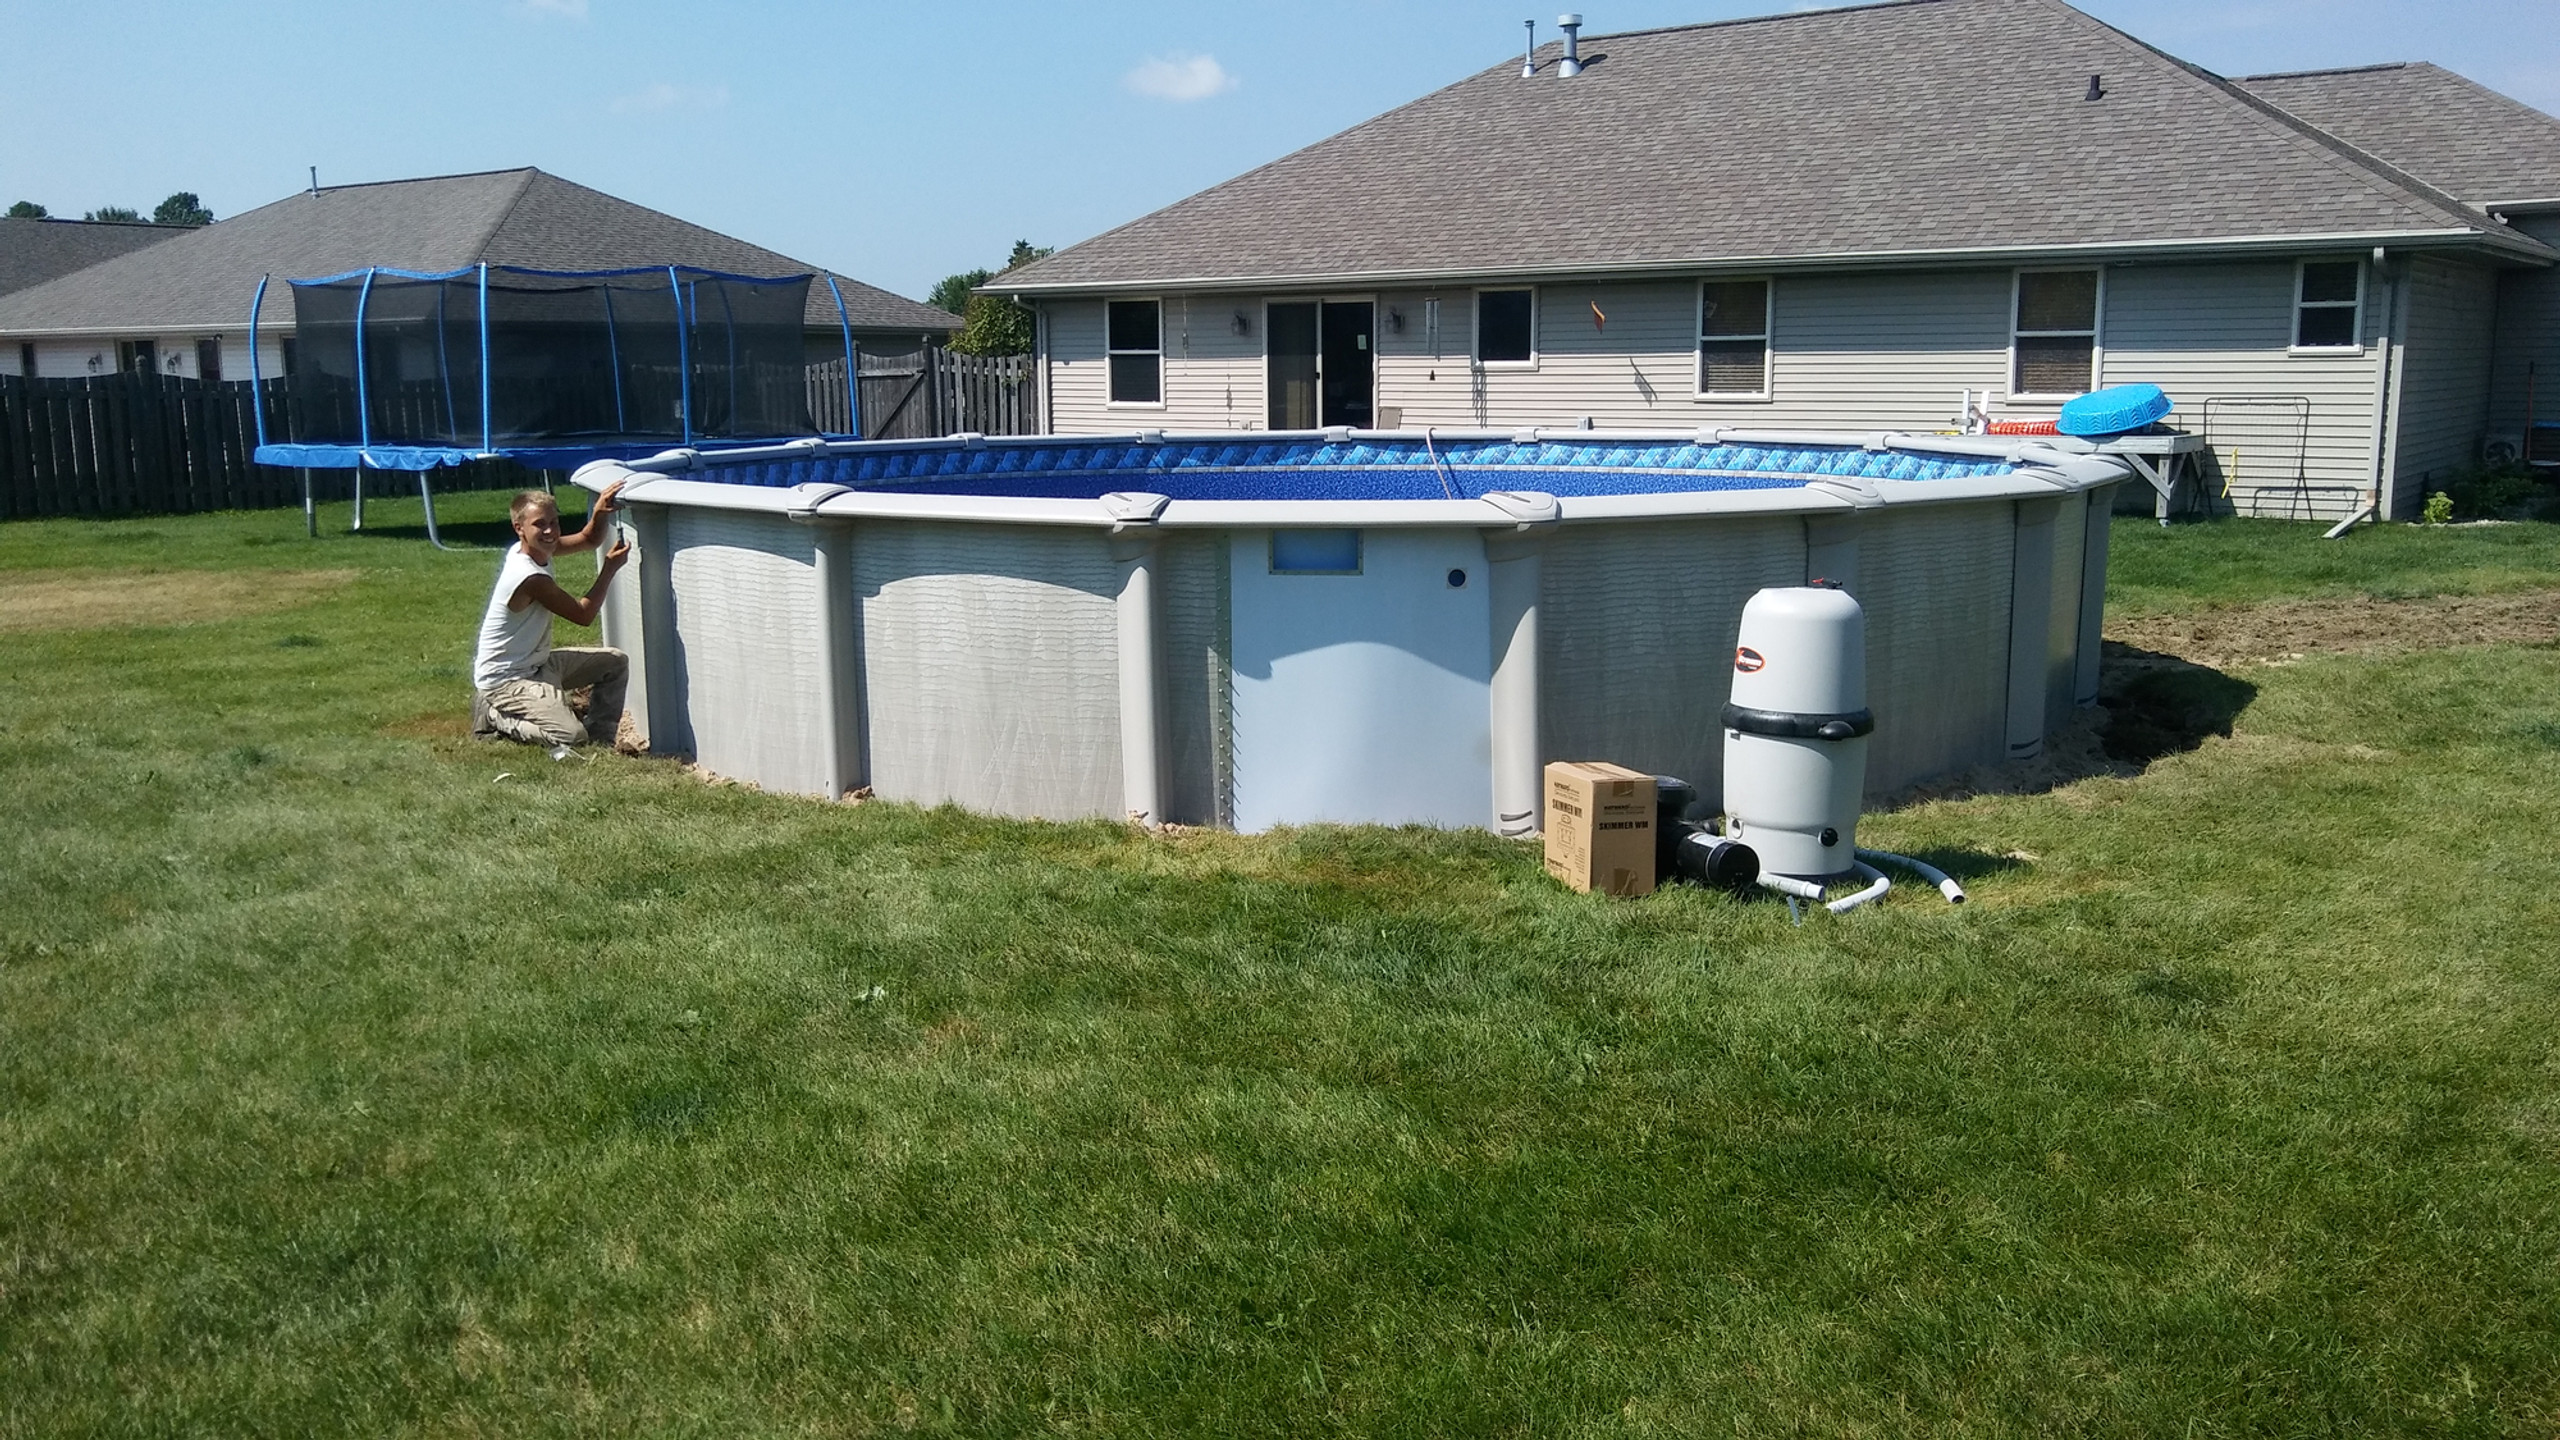 This is the 24' Round Evolution Above Ground Pool from Pool Pros. Pool Pros built this above ground pool in Bellevue, WI in 2017.